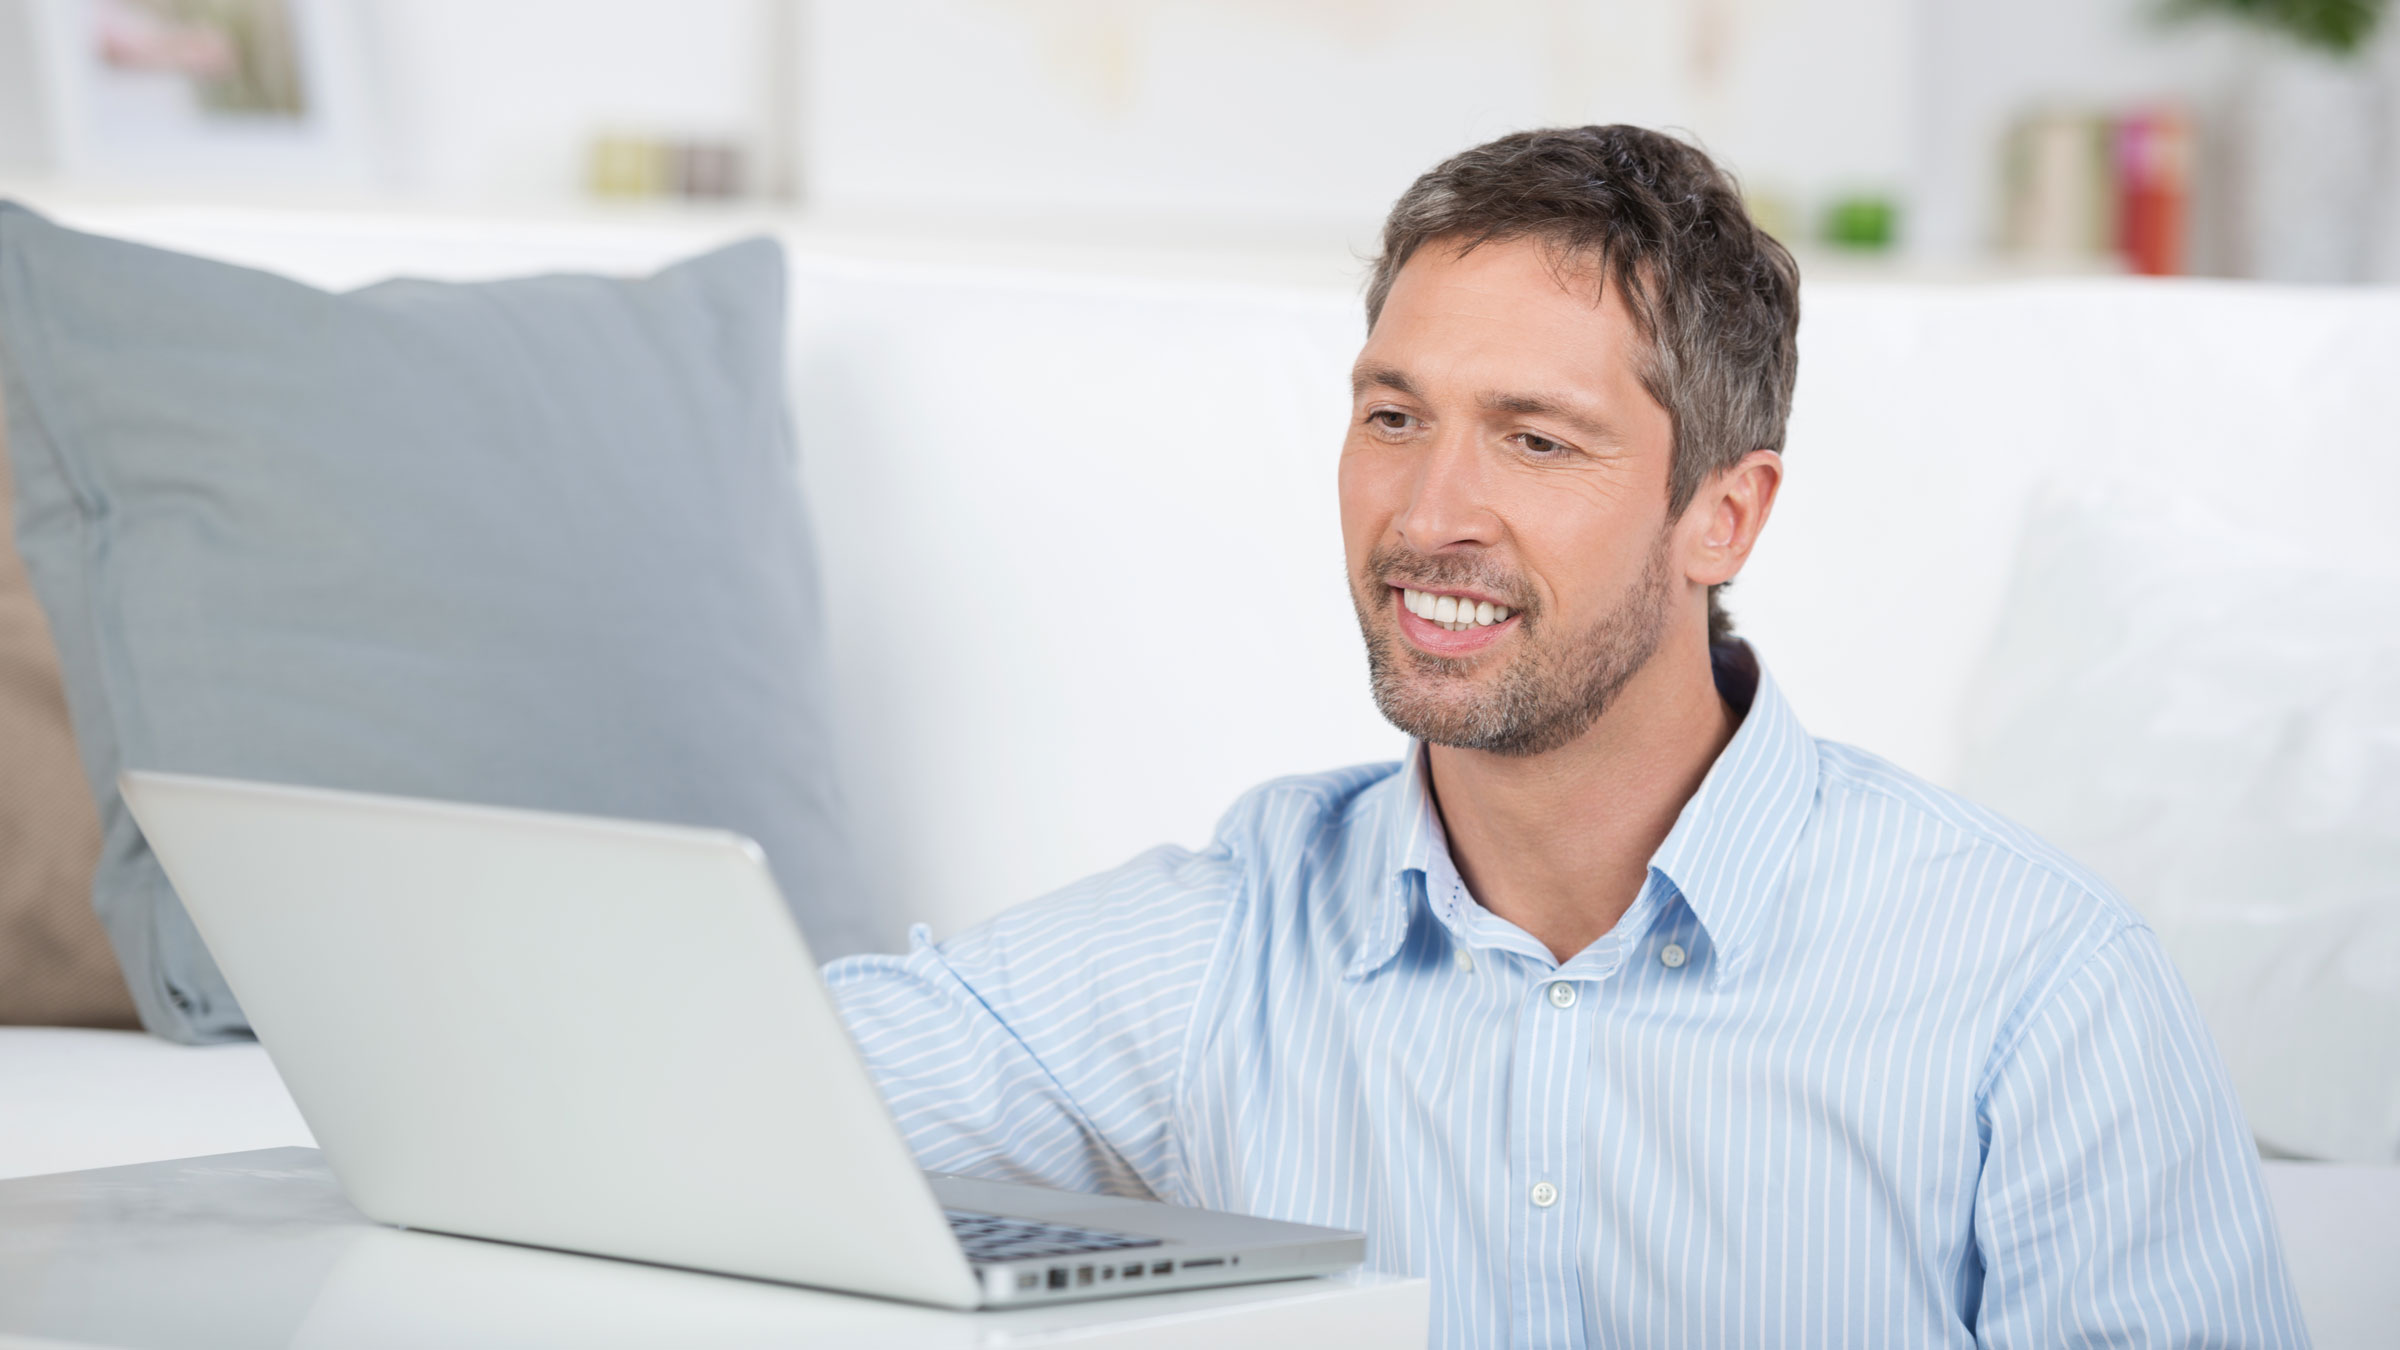 Man sitting in front of laptop